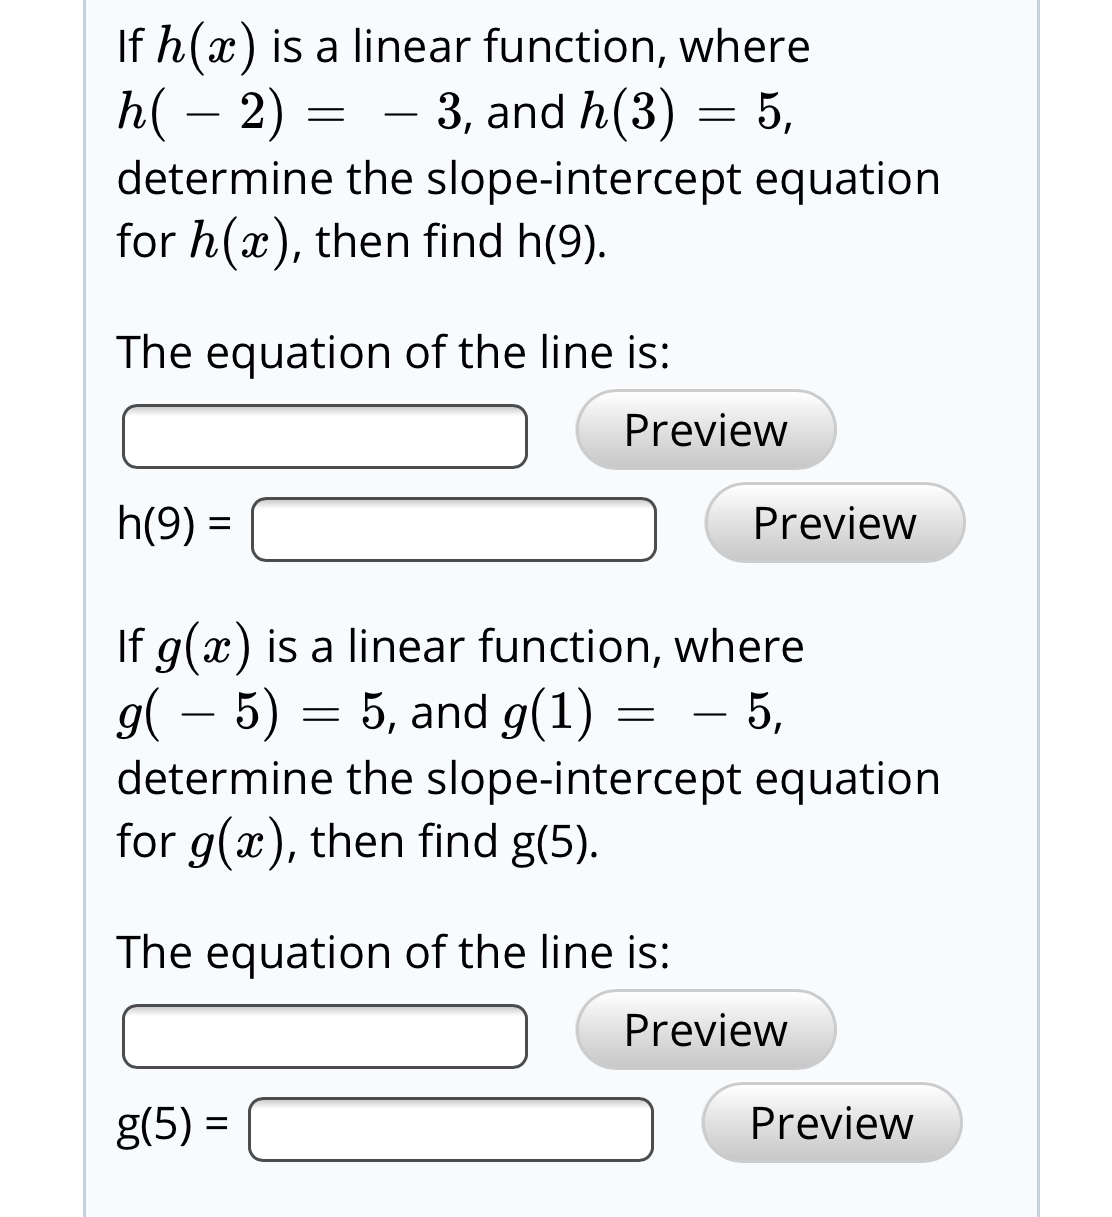 If h(x) is a linear function, where h( – 2) = determine the slope-intercept equation for h(x), then find h(9). 3, and h(3) = 5, The equation of the line is: Preview h(9) = Preview If g(x) is a linear function, where g( – 5) = 5, and g(1) determine the slope-intercept equation for g(x), then find g(5). - 5, The equation of the line is: Preview Preview g(5) =